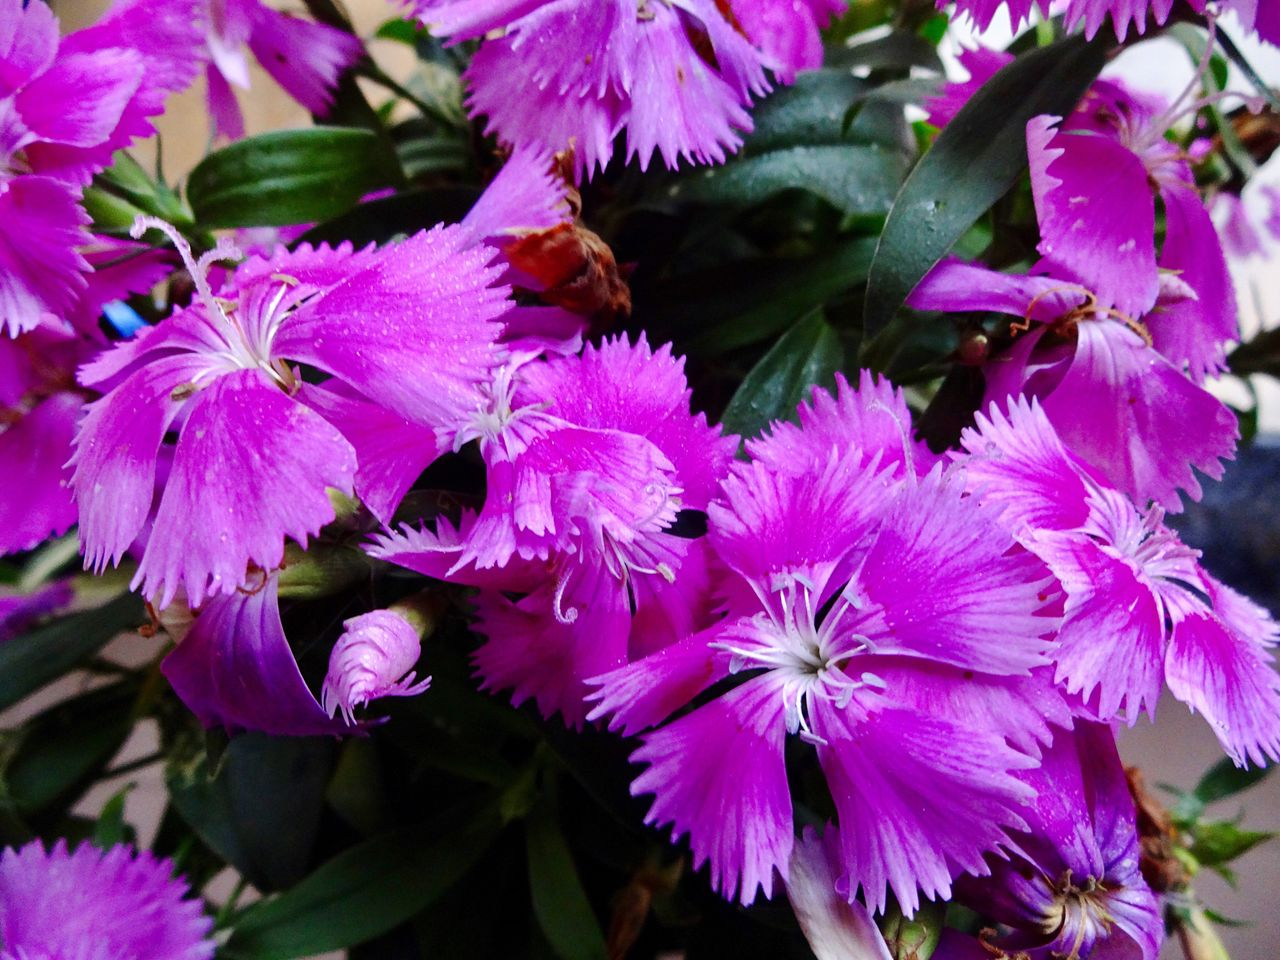 flower, growth, nature, petal, purple, beauty in nature, spring, no people, plant, outdoors, fragility, blooming, freshness, day, flower head, close-up